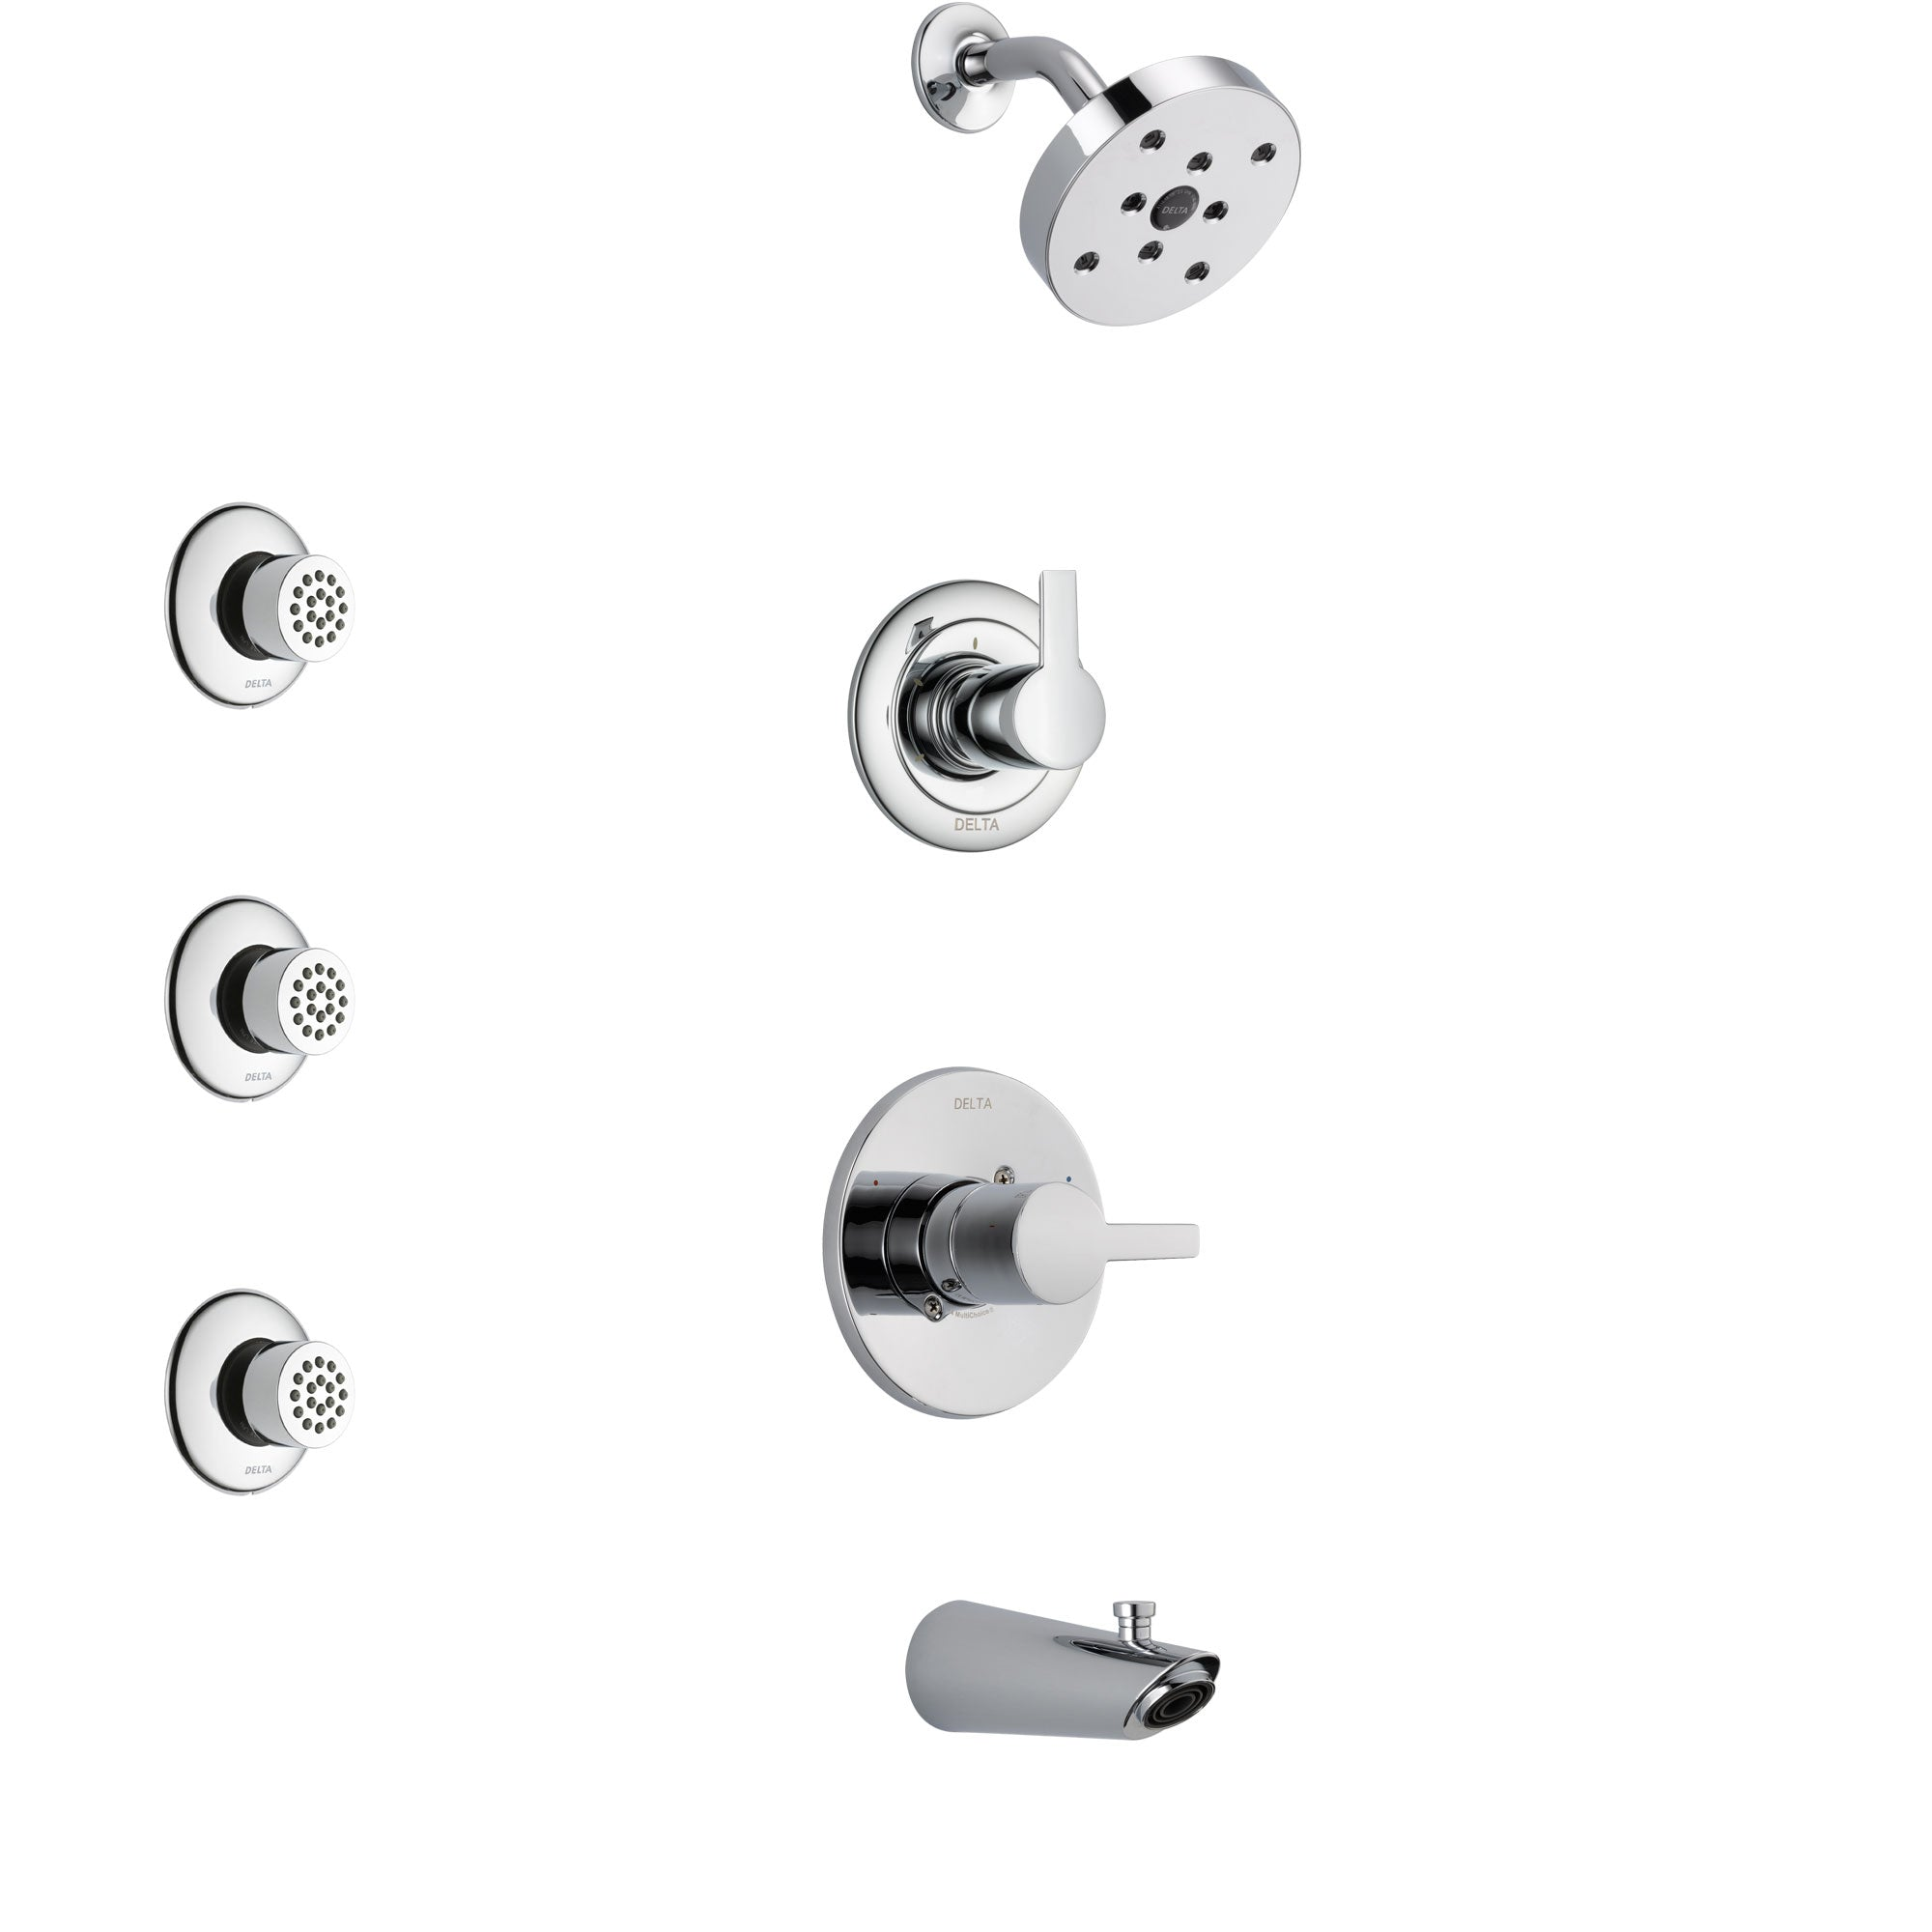 Delta Compel Chrome Finish Tub and Shower System with Control Handle, 3-Setting Diverter, Showerhead, and 3 Body Sprays SS144611